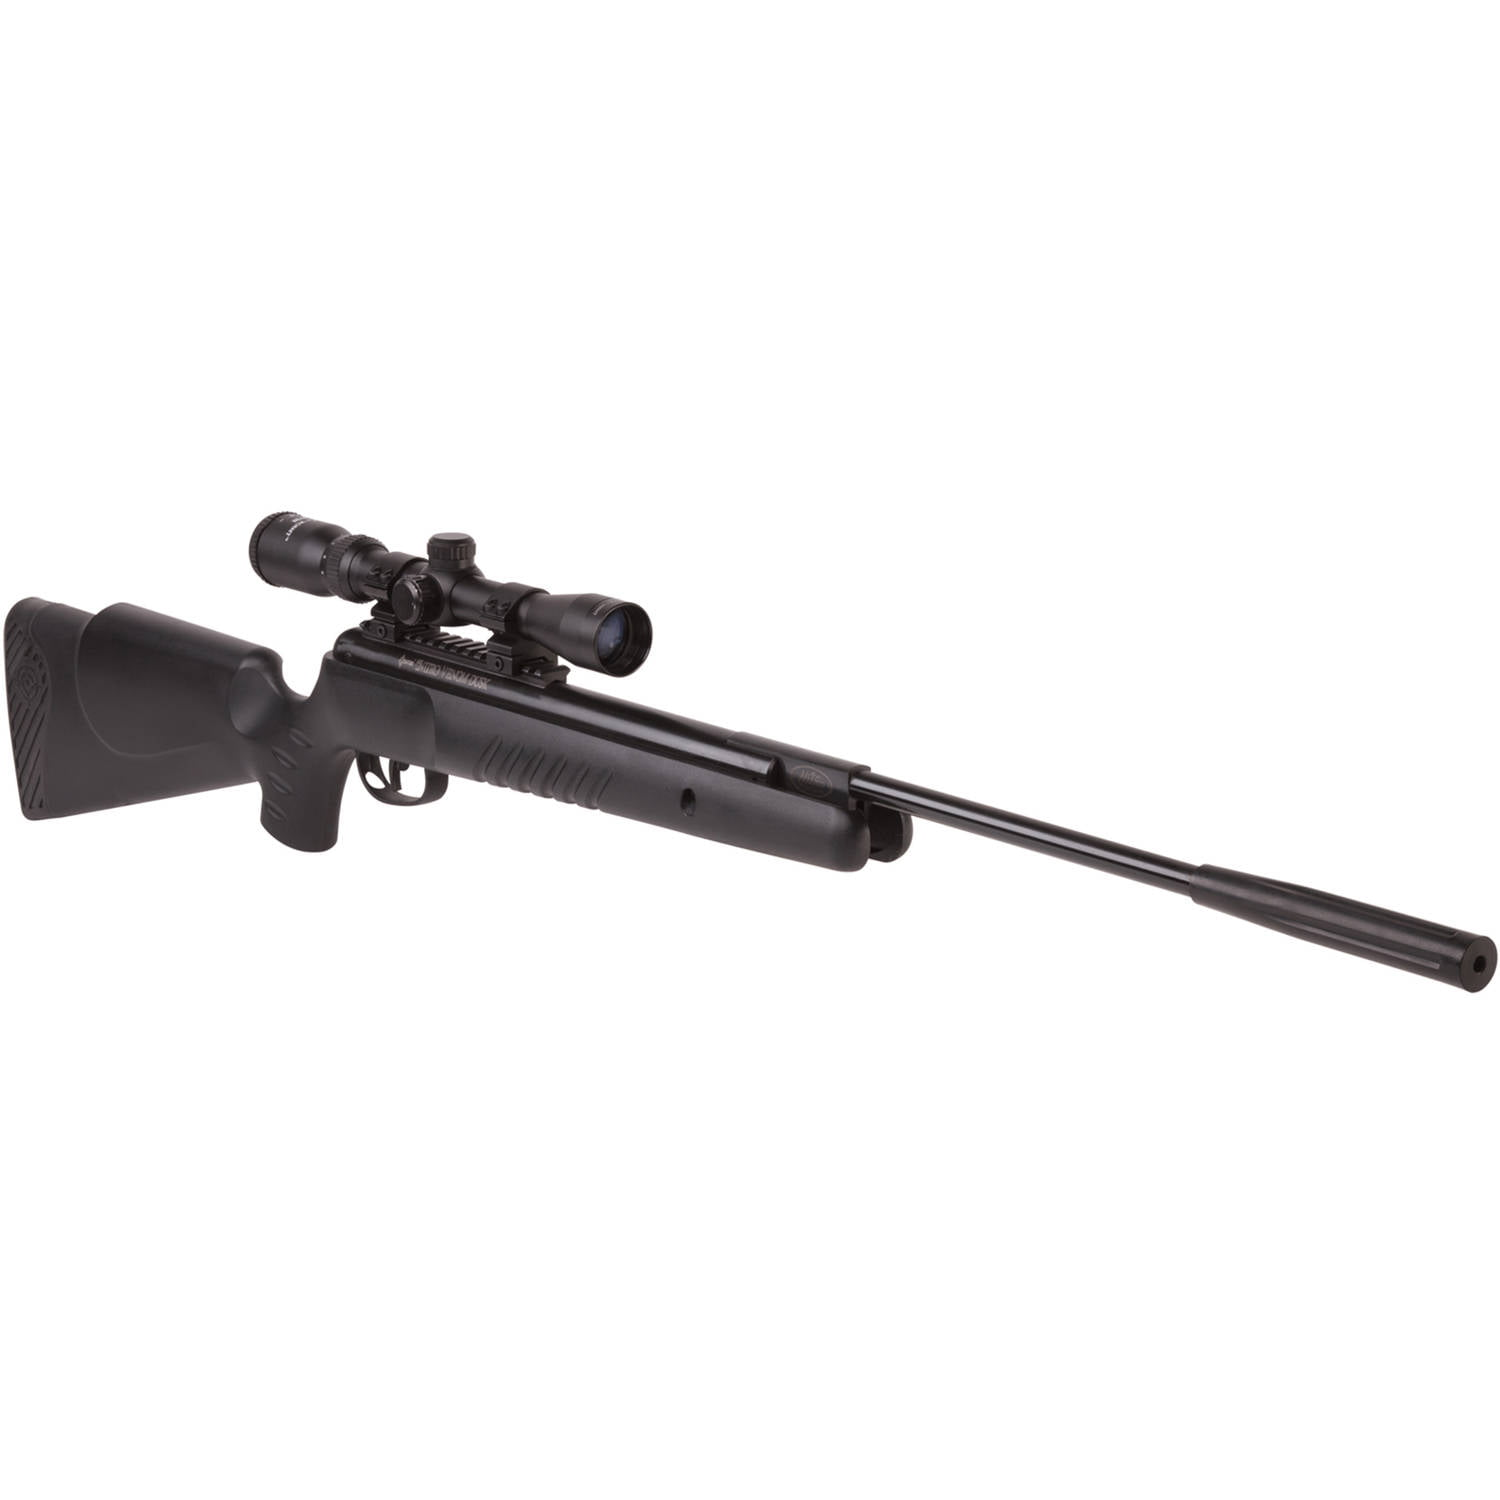 Click here to buy Crosman Nitro Venom Dusk with scope .22 Cal Air Rifle CD8M2 by Crosman.